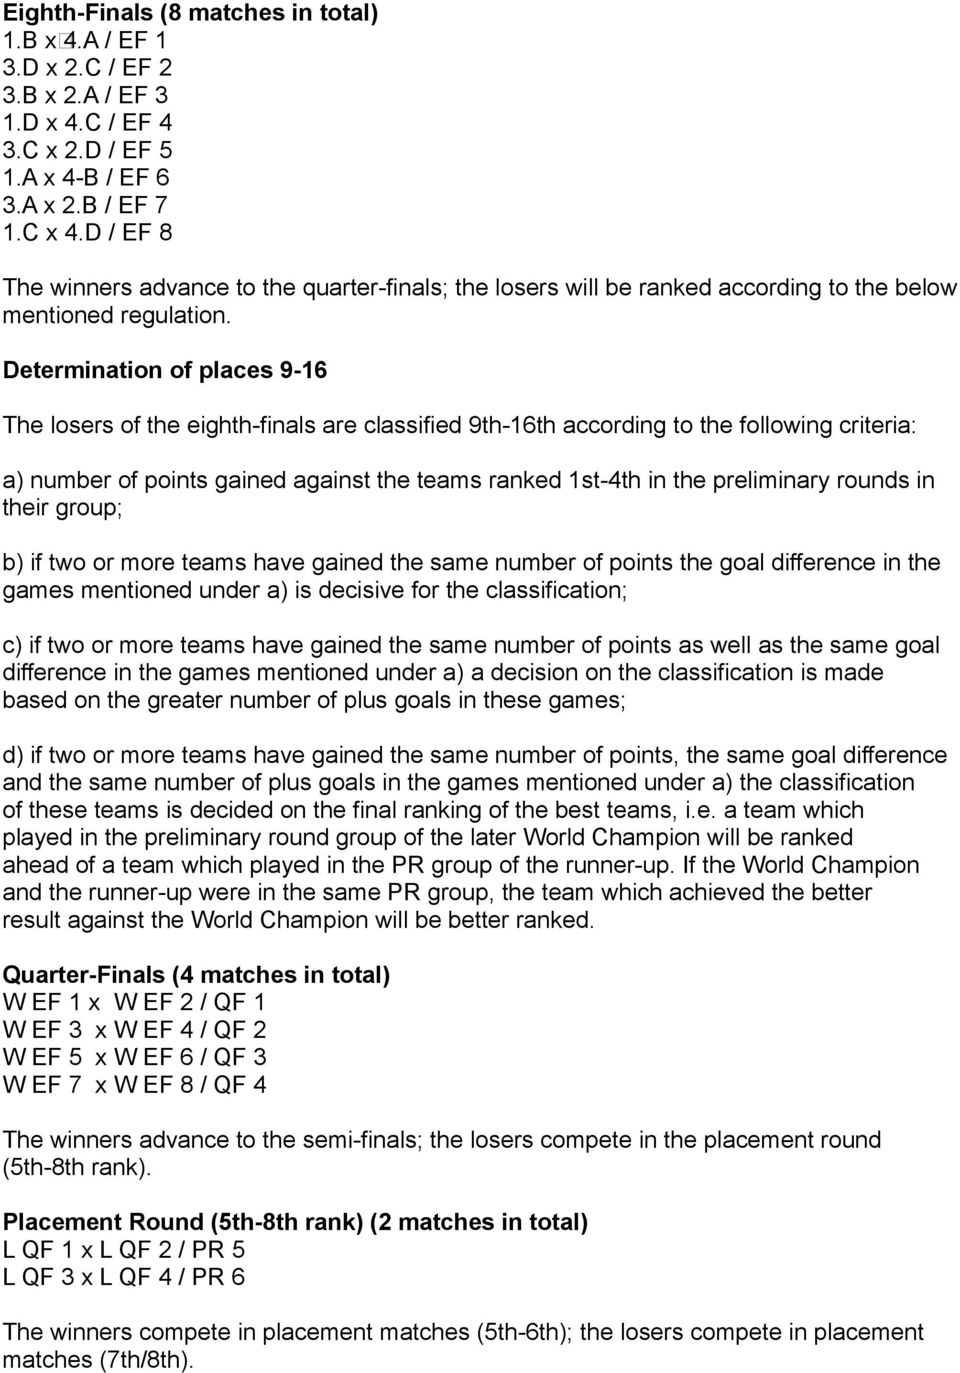 Determination of places 9-16 The losers of the eighth-finals are classified 9th-16th according to the following criteria: a) number of points gained against the teams ranked 1st-4th in the